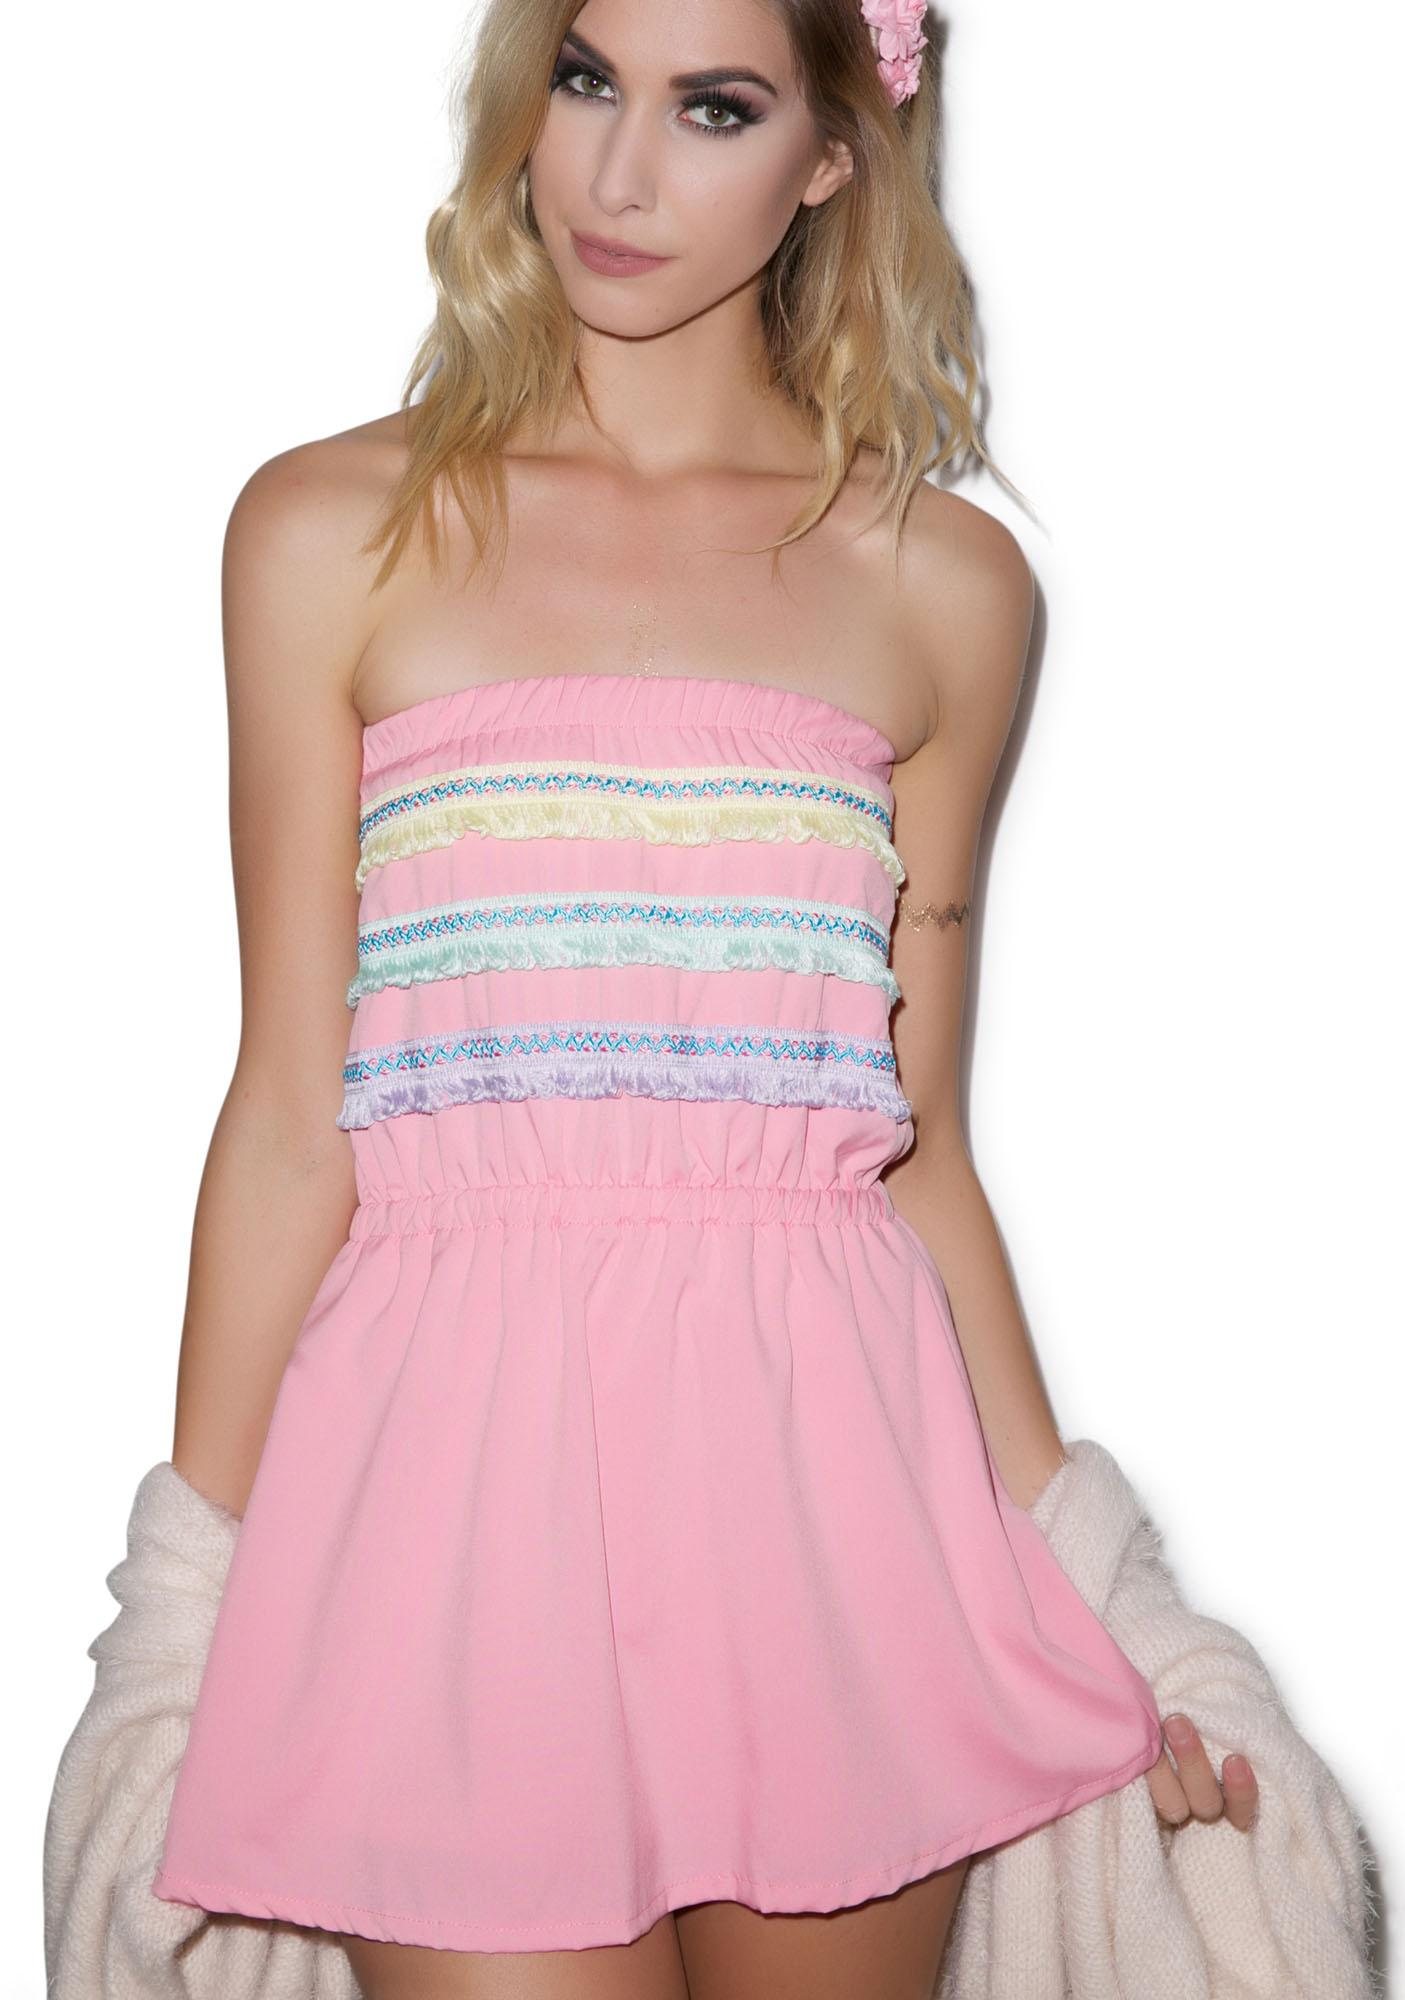 Lil' Polly Ruffle Dress